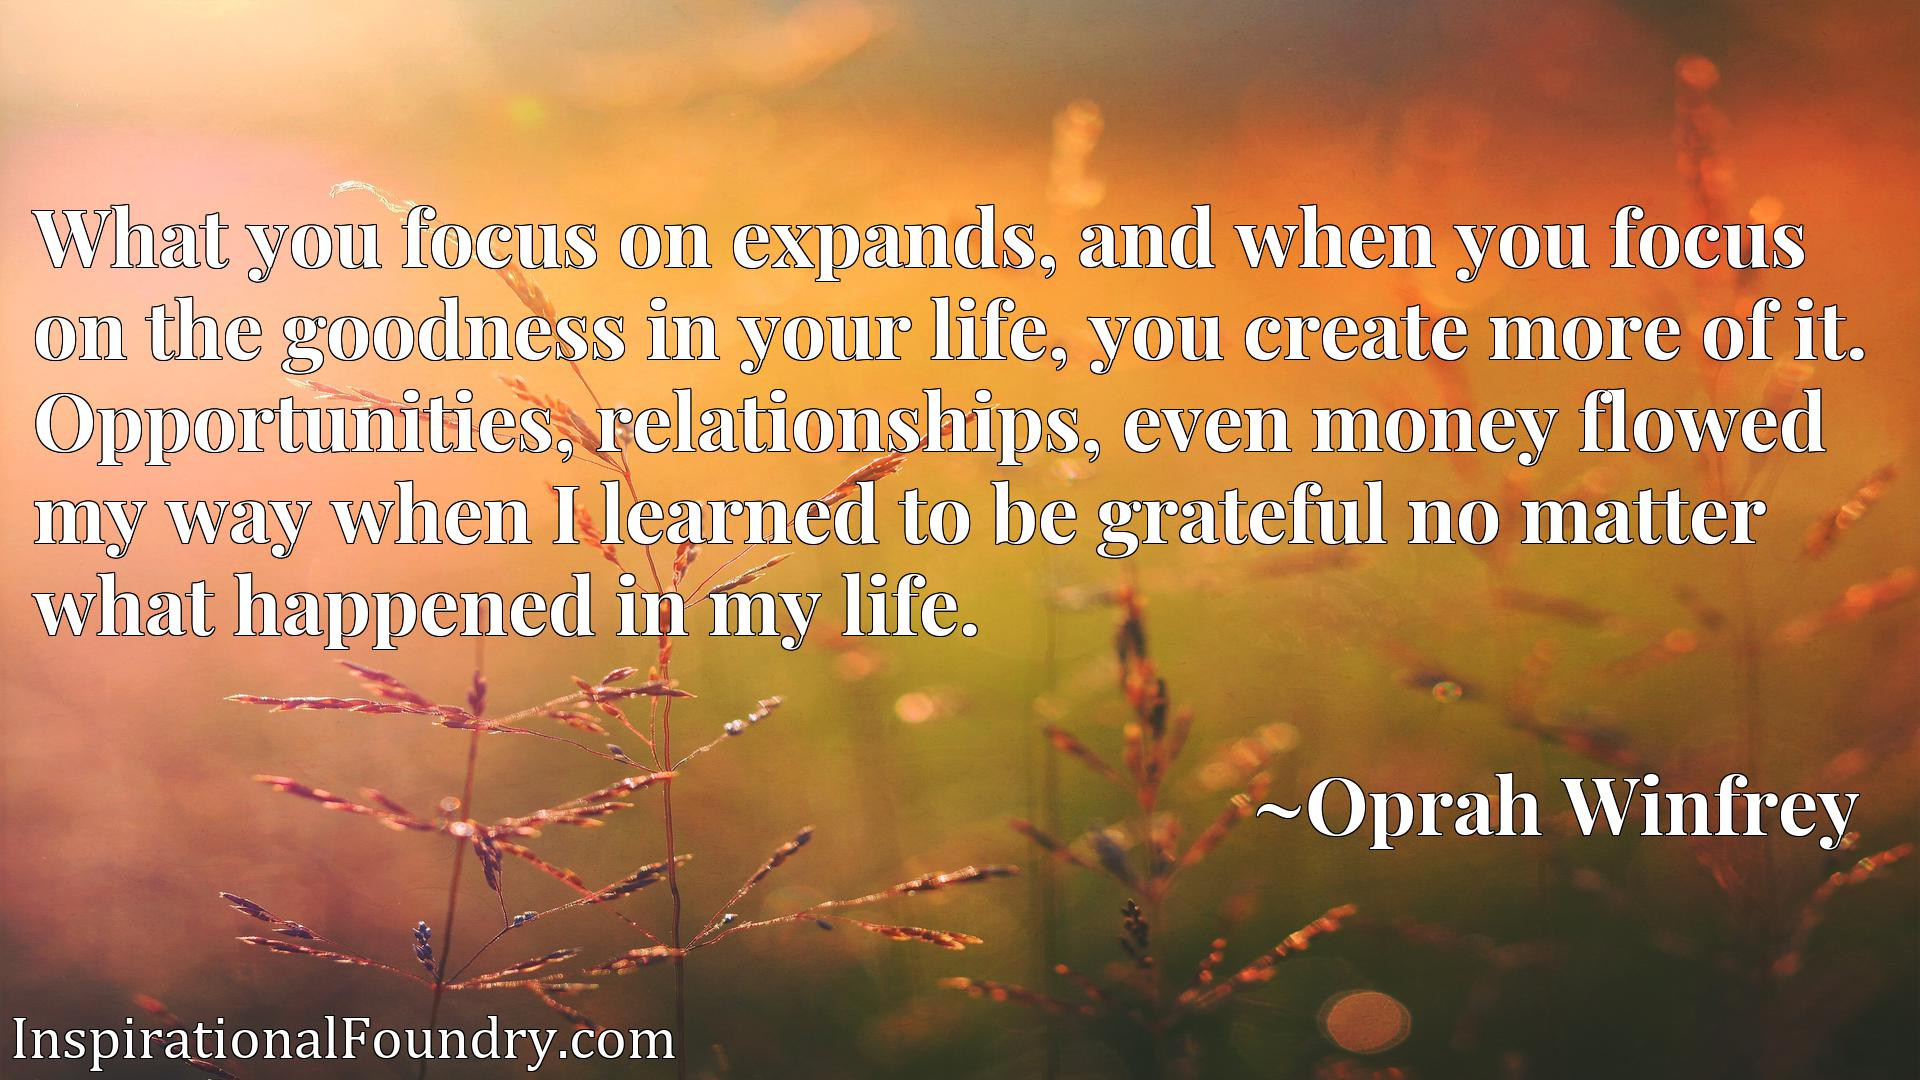 What you focus on expands, and when you focus on the goodness in your life, you create more of it. Opportunities, relationships, even money flowed my way when I learned to be grateful no matter what happened in my life.